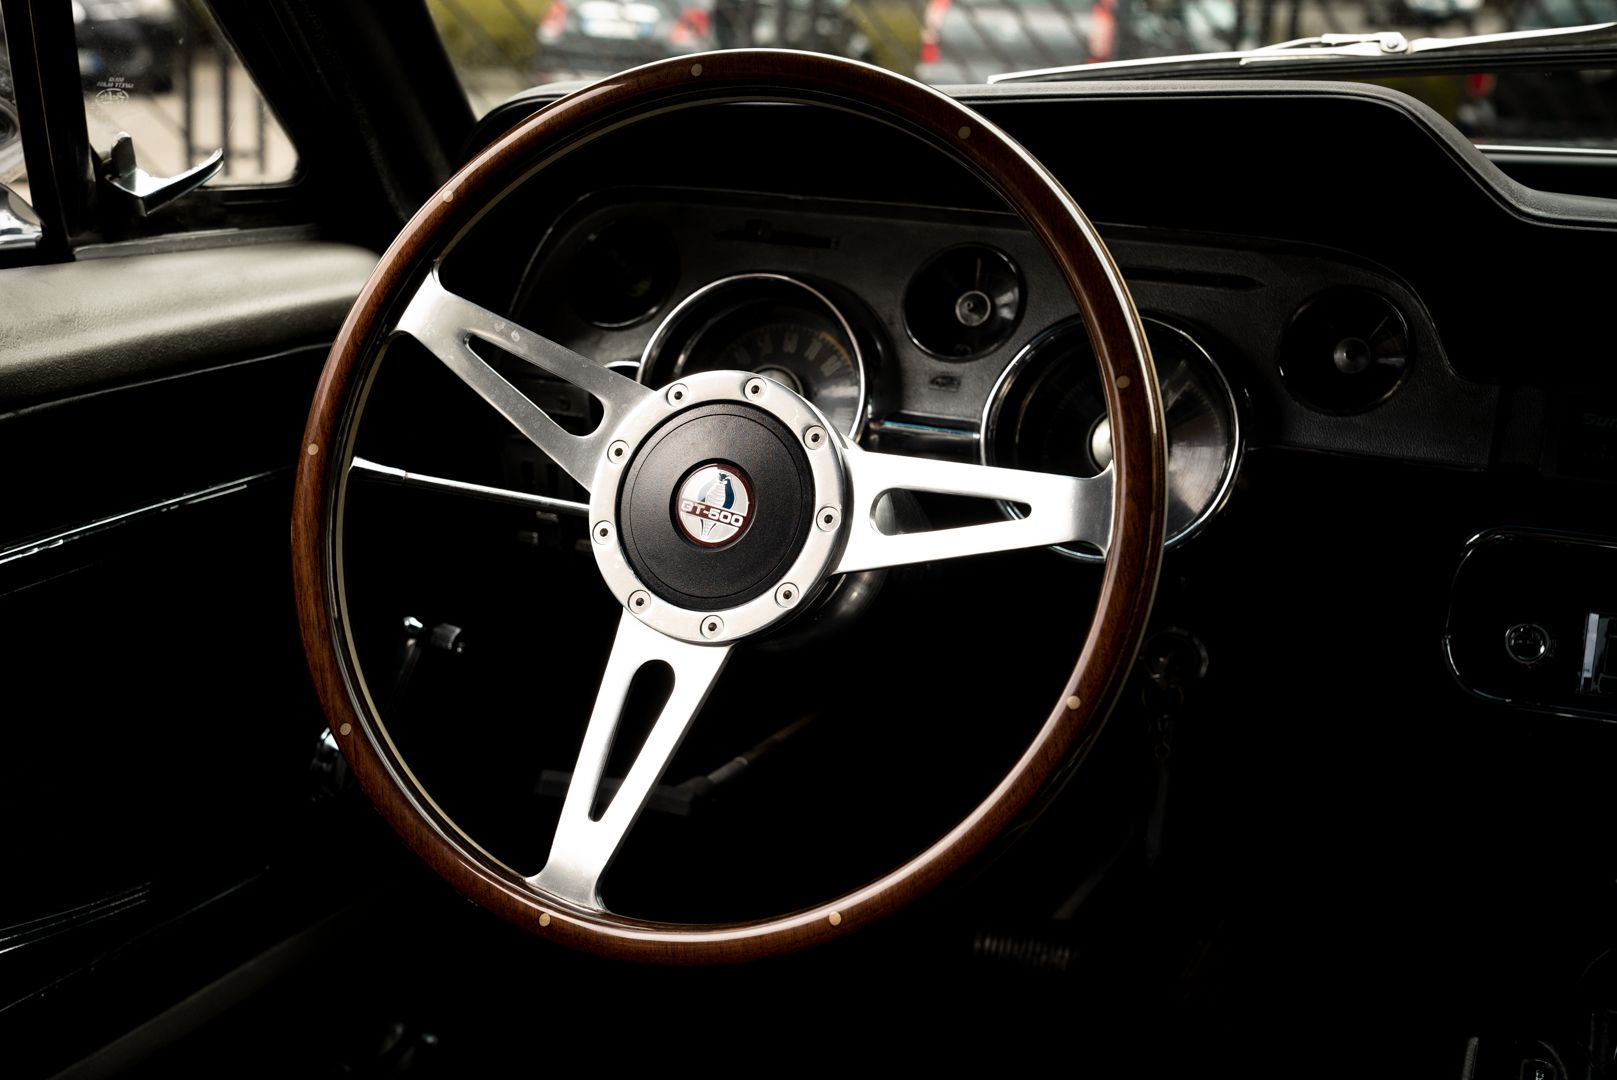 1968 Ford Mustang Shelby GT 500 Eleanor Replica 79951